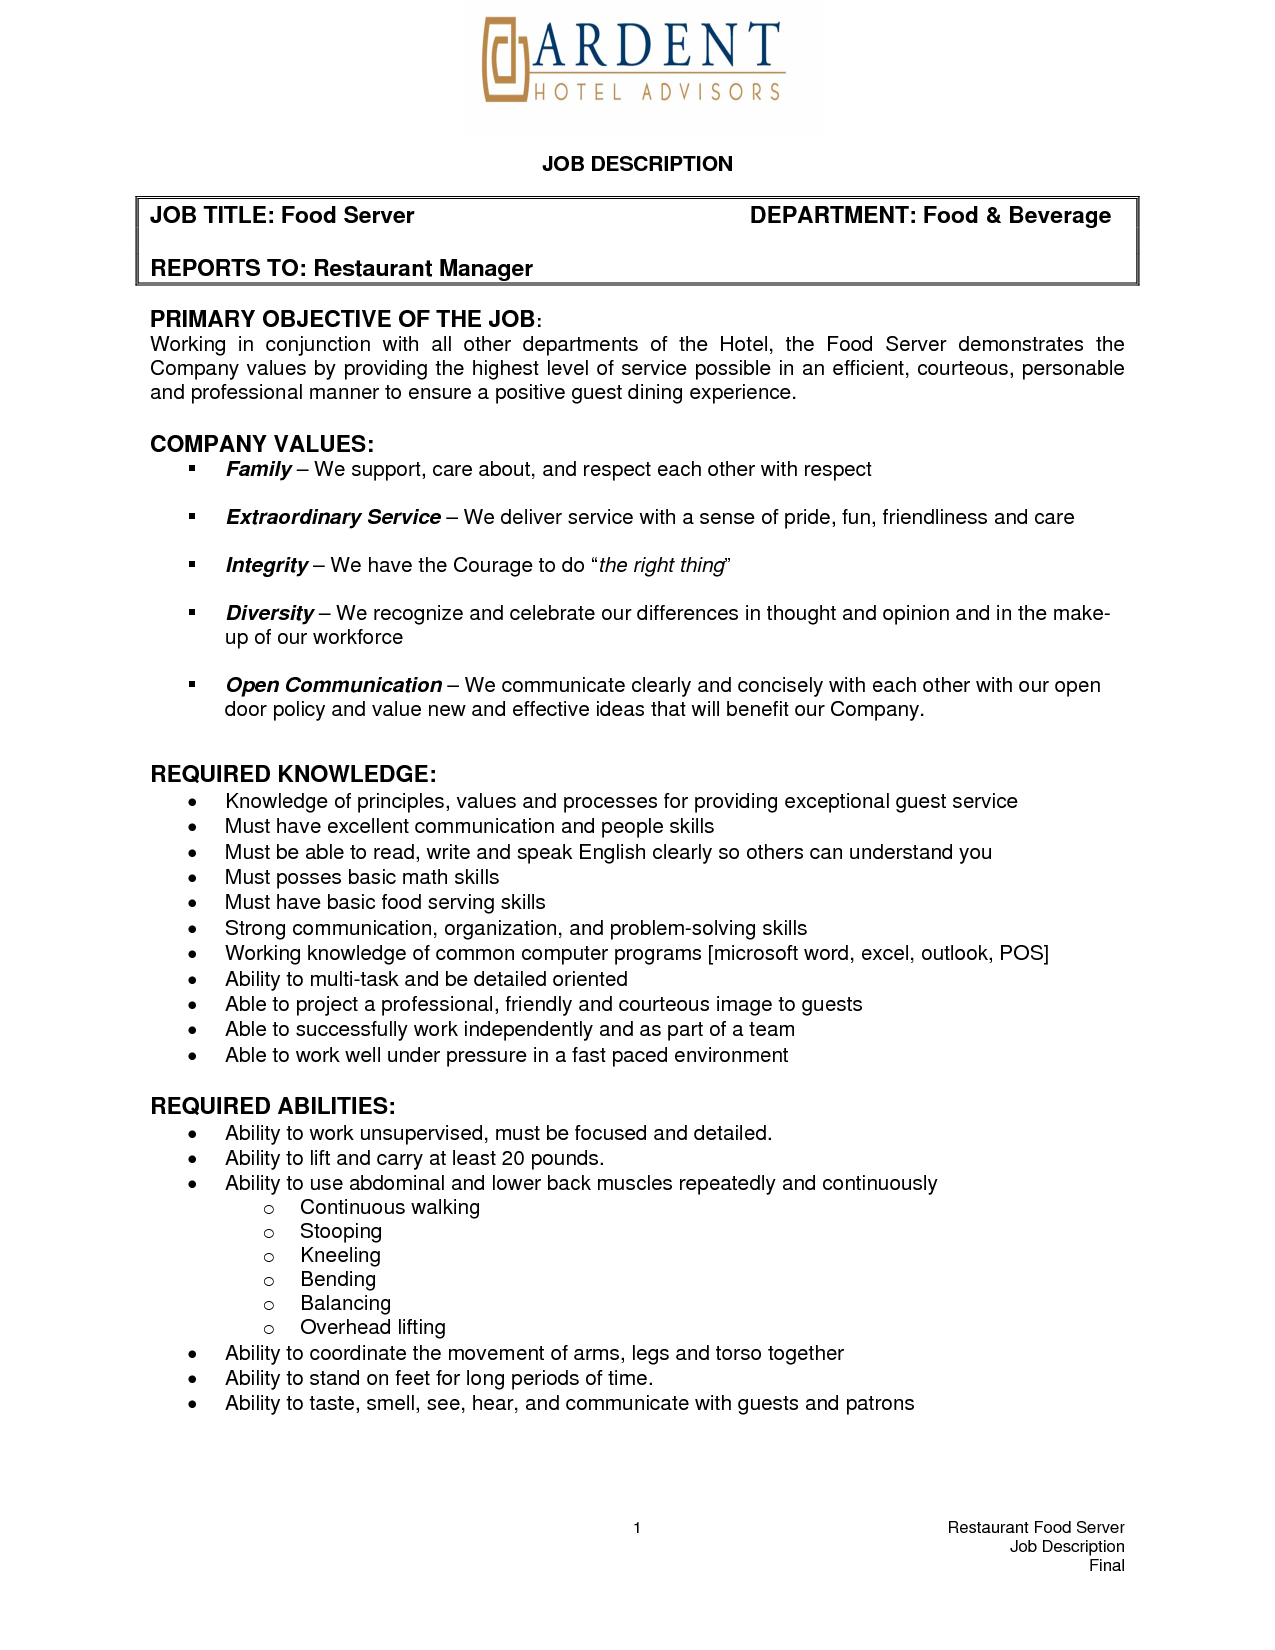 Server Skills Resume Beauteous Banquet Server Resume Example  Httpwwwresumecareer Inspiration